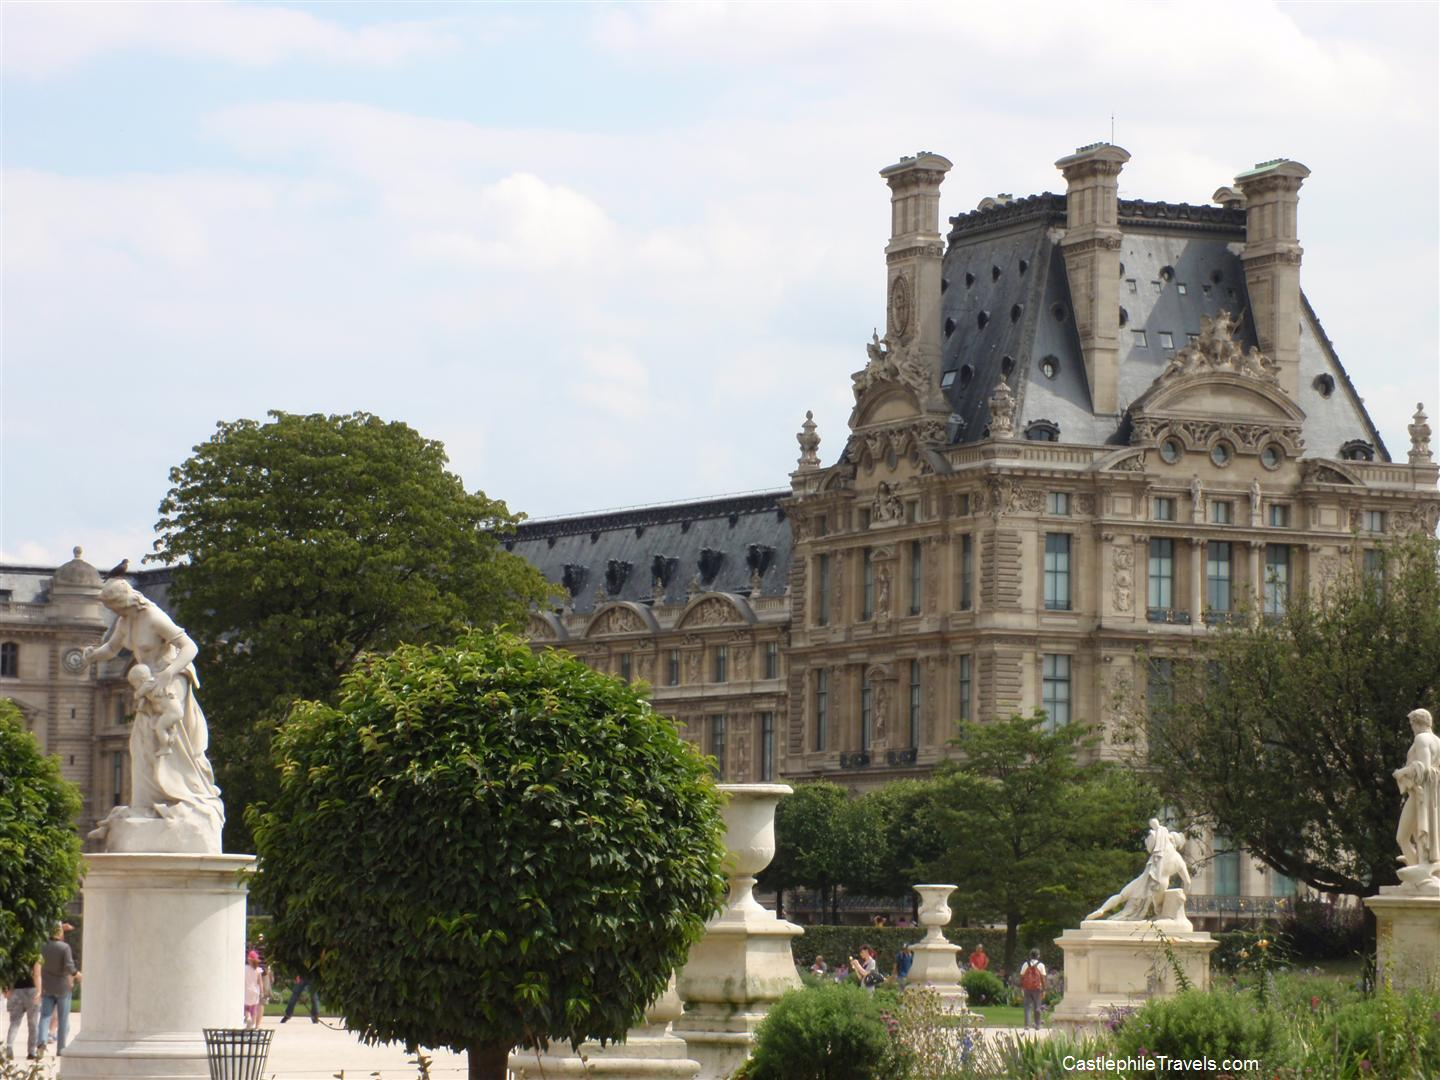 The Louvre from the gardens